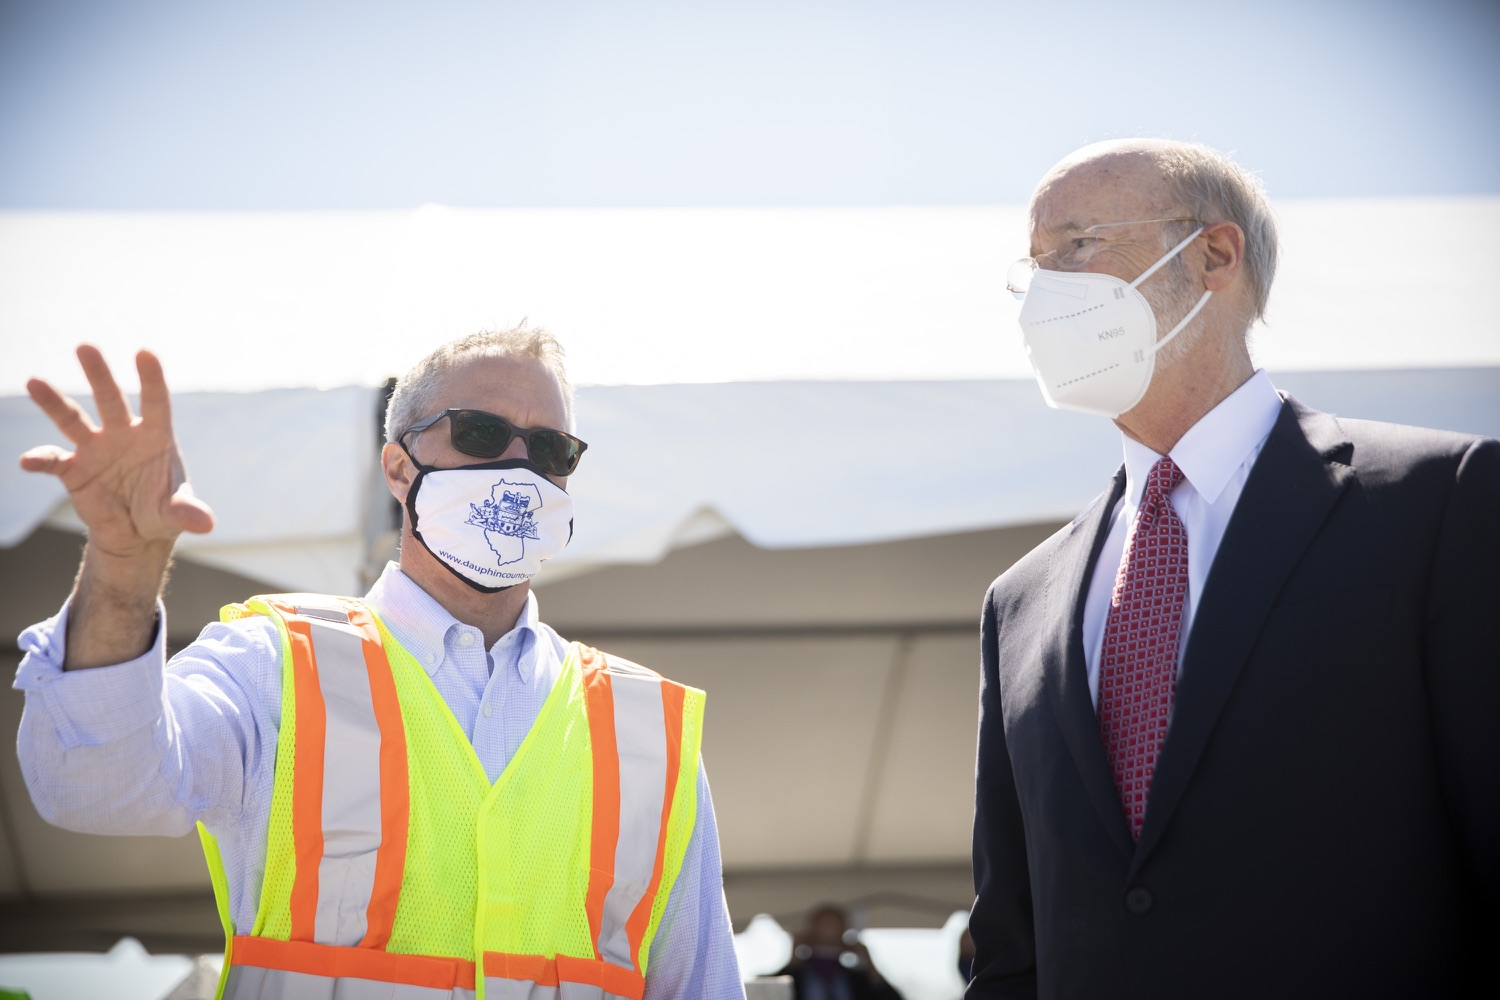 """<a href=""""https://filesource.wostreaming.net/commonwealthofpa/photo/18631_gov_hacc_vaccine_dz_005.jpg"""" target=""""_blank"""">⇣Download Photo<br></a>Pennsylvania Governor Tom Wolf touring the vaccination site.  Governor Wolf today visited the COVID-19 drive-thru mass vaccination clinic for Dauphin County residents at Harrisburg Area Community College. The drive-thru clinic was developed in partnership with UPMC Pinnacle and Dauphin County. He was joined by UPMC Pinnacle President Phil Guarneschelli and Dauphin County Commissioners Mike Pries and George P. Hartwick III.  HARRISBURG, PA -- March 30, 2021"""